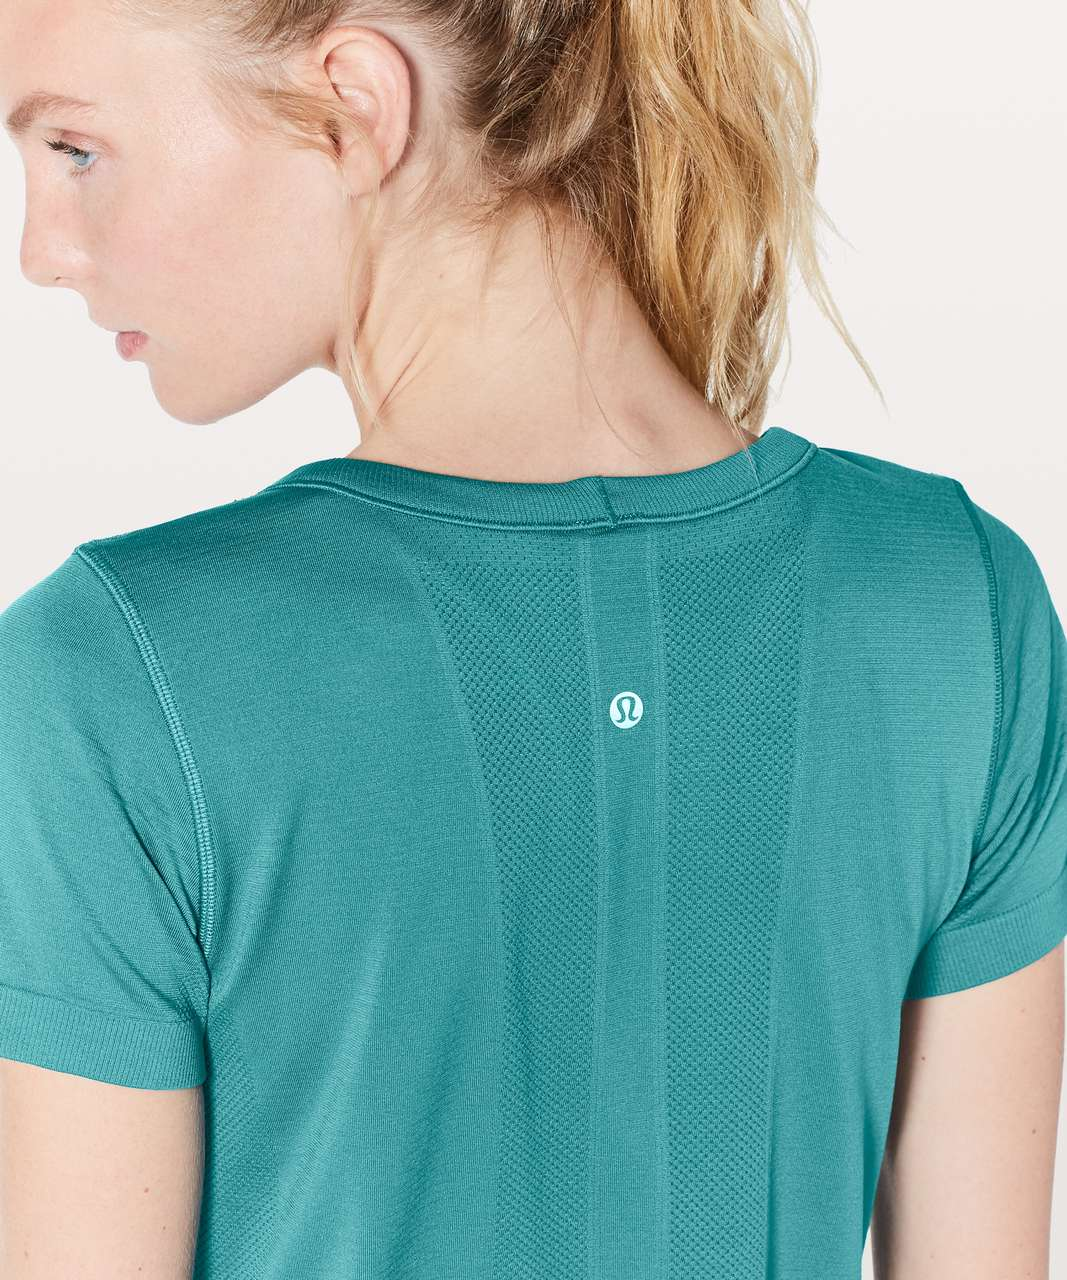 Lululemon Swiftly Tech Short Sleeve (Breeze) *Relaxed Fit - Deep Cove / Deep Cove